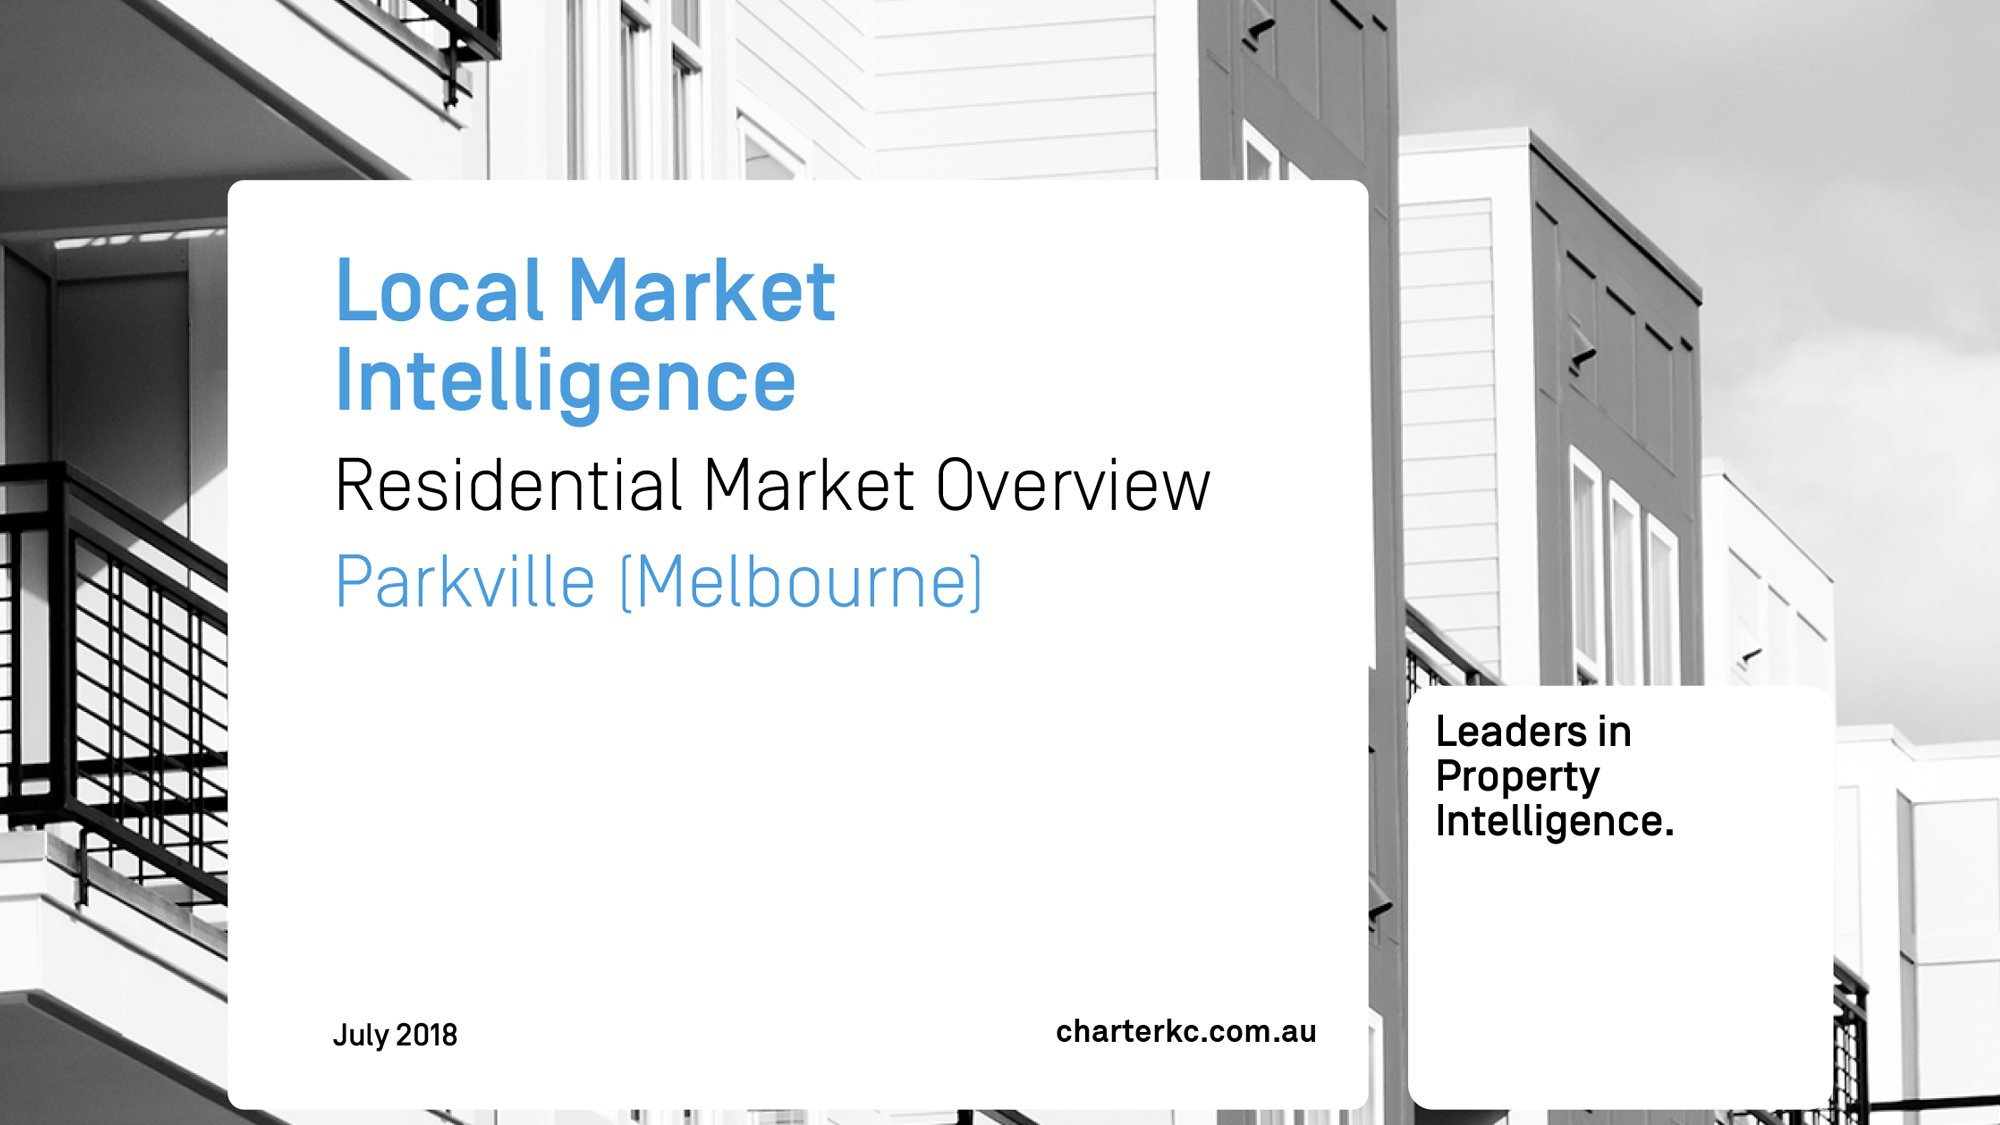 Local Market Intelligence Report